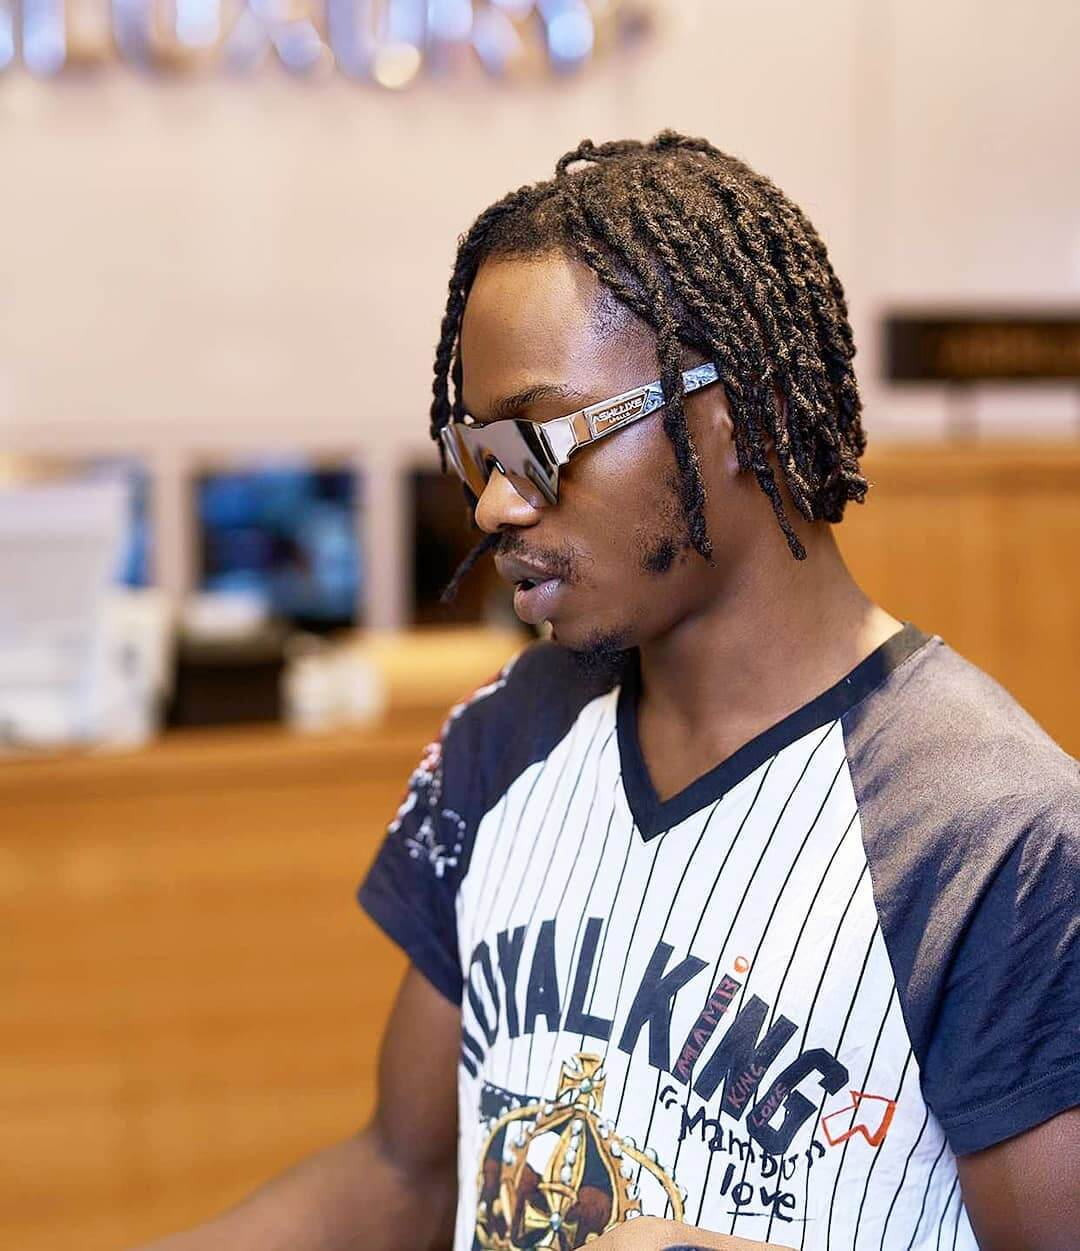 Naira Marley Reveals Plans To Open Charitable Eatery